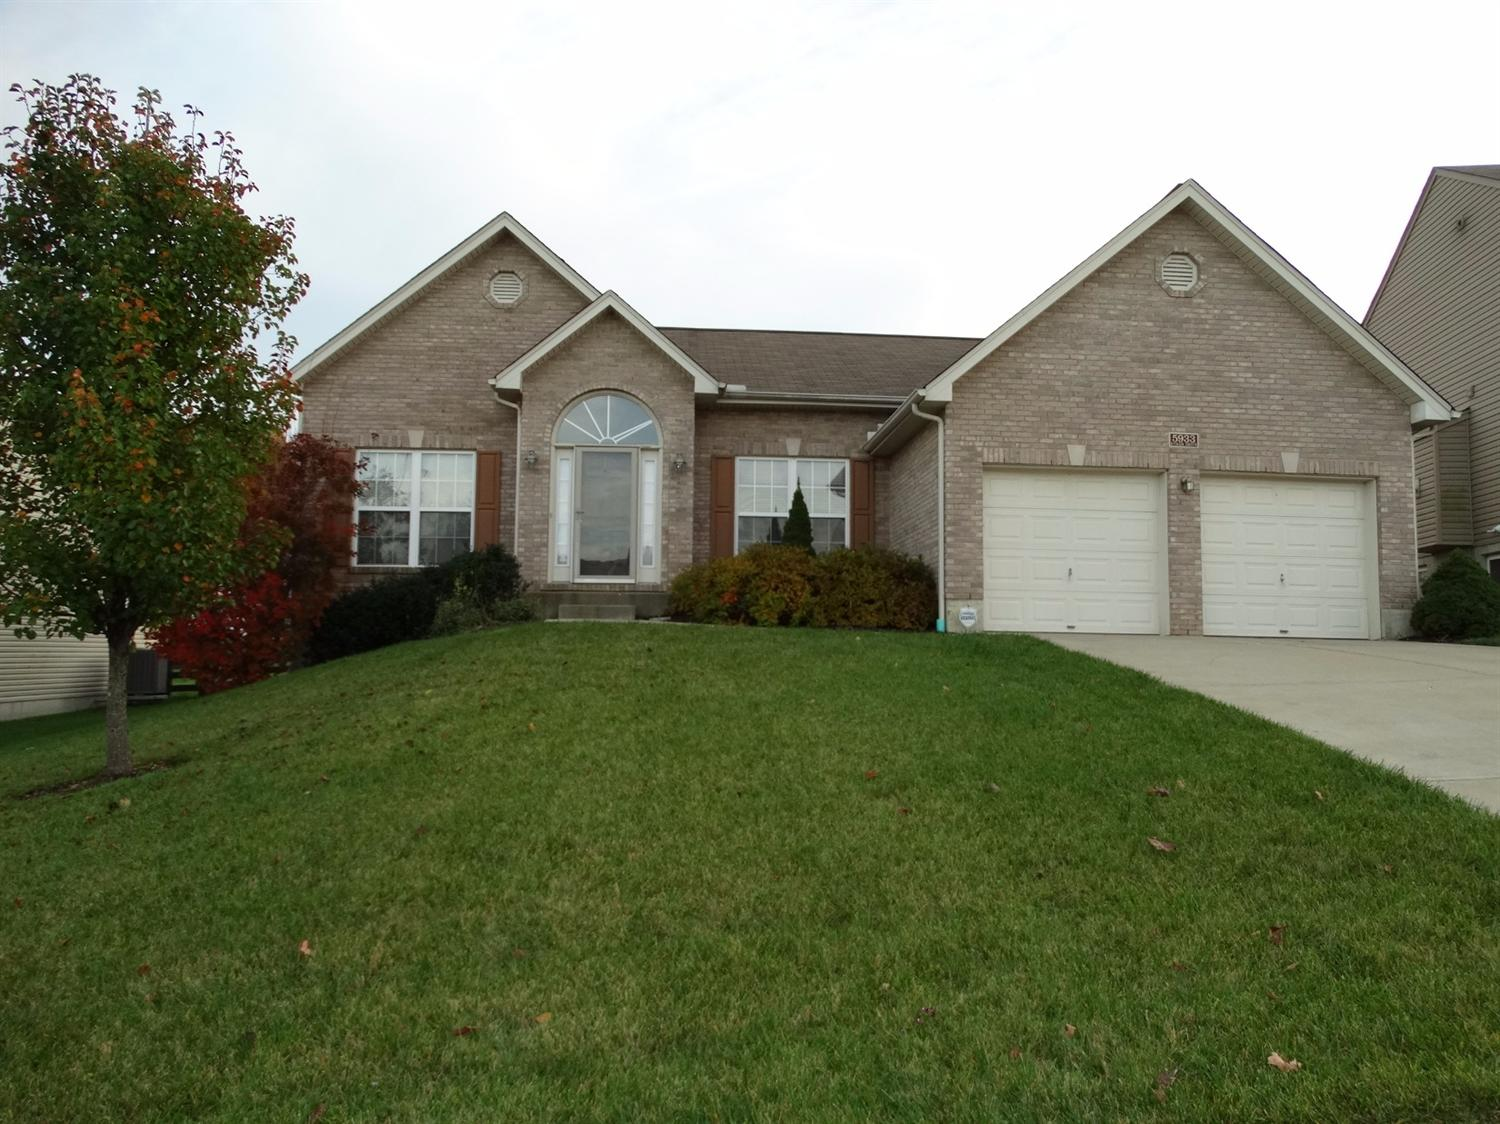 Photo 1 for 5933 Ethan Dr Burlington, KY 41005